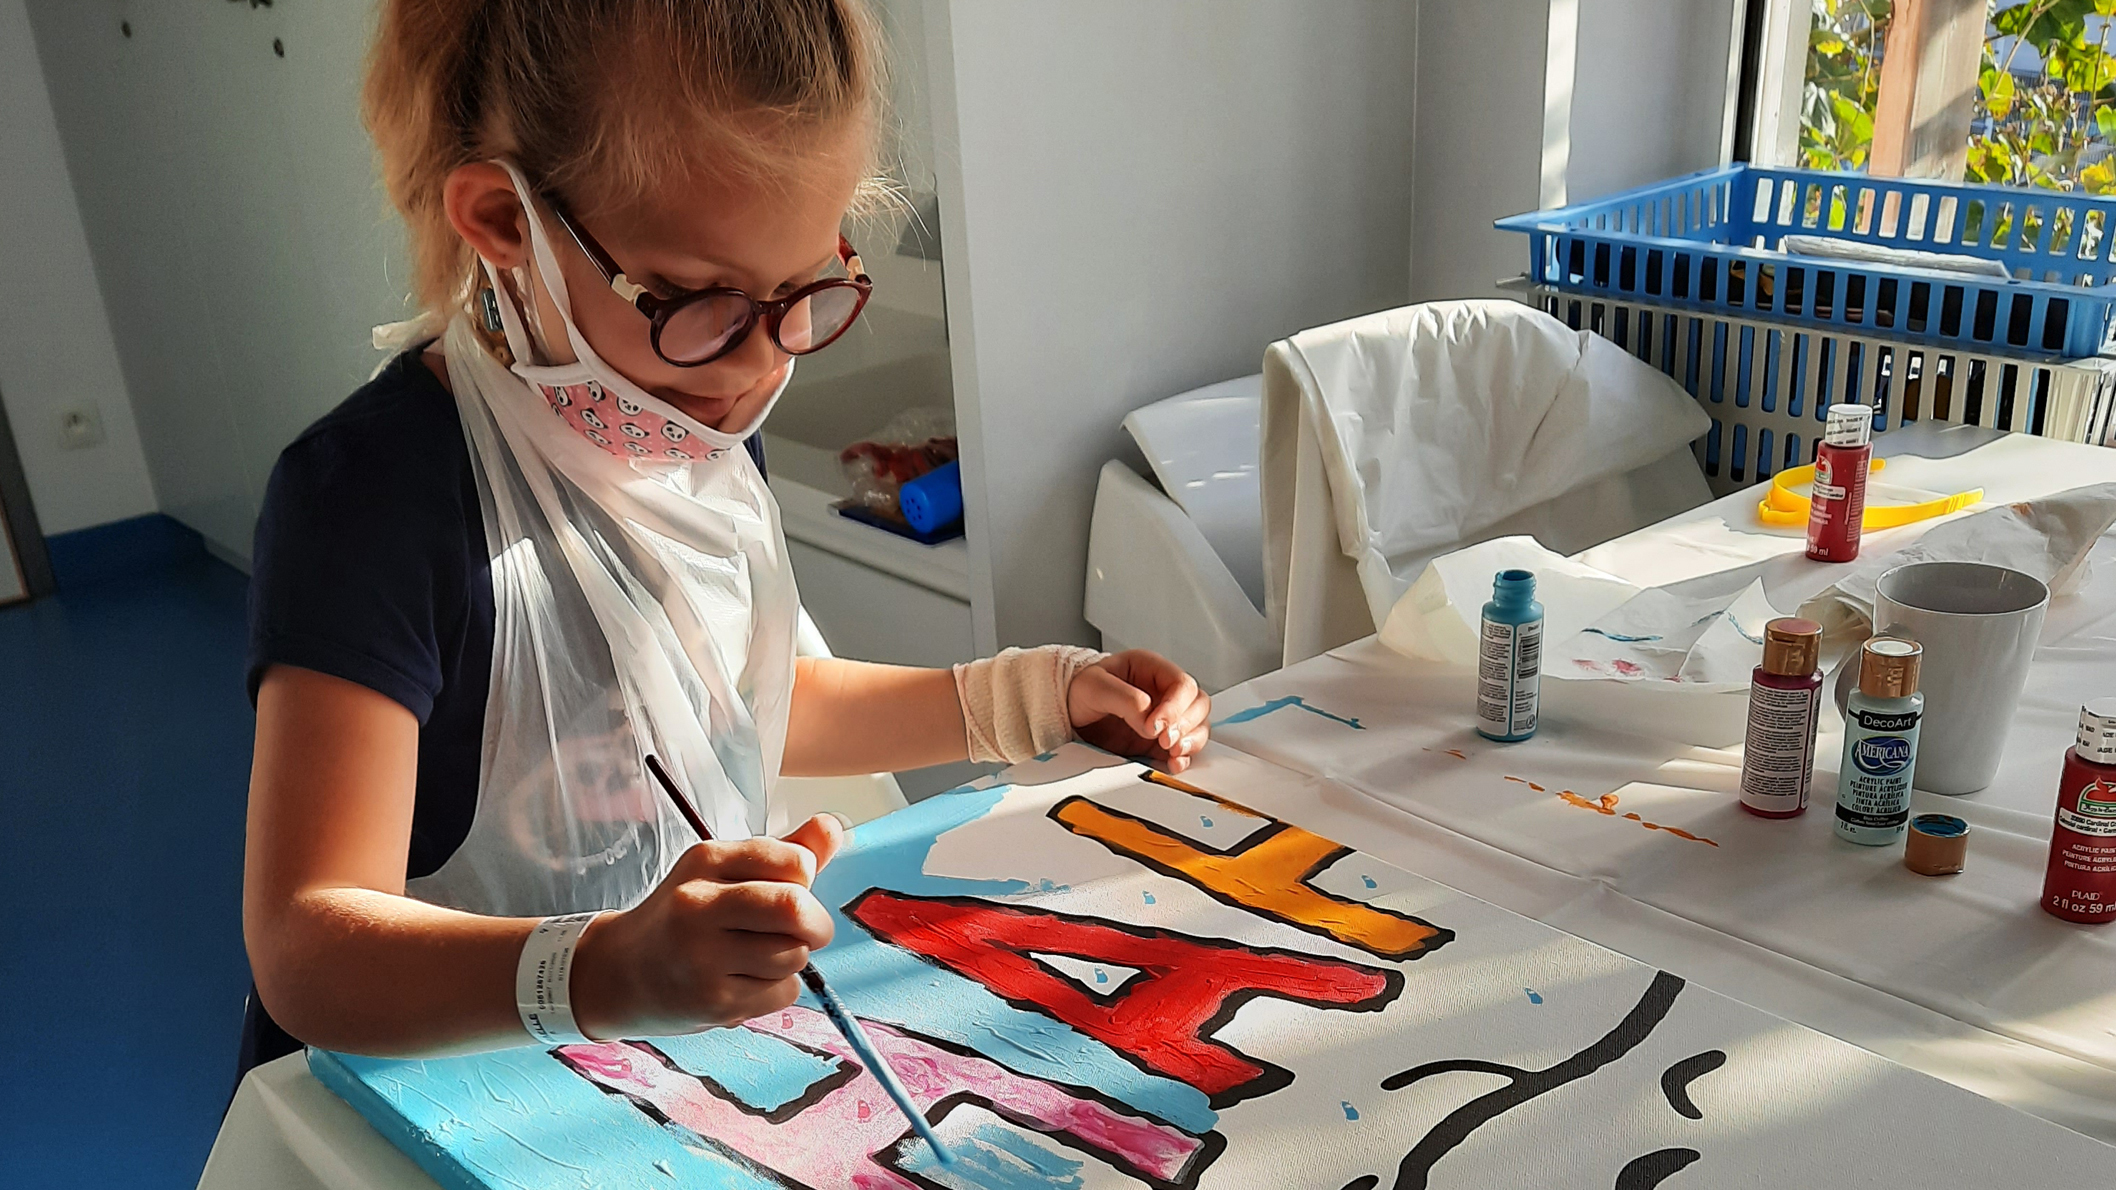 A little girl wearing a face mask is sitting at a table and painting.